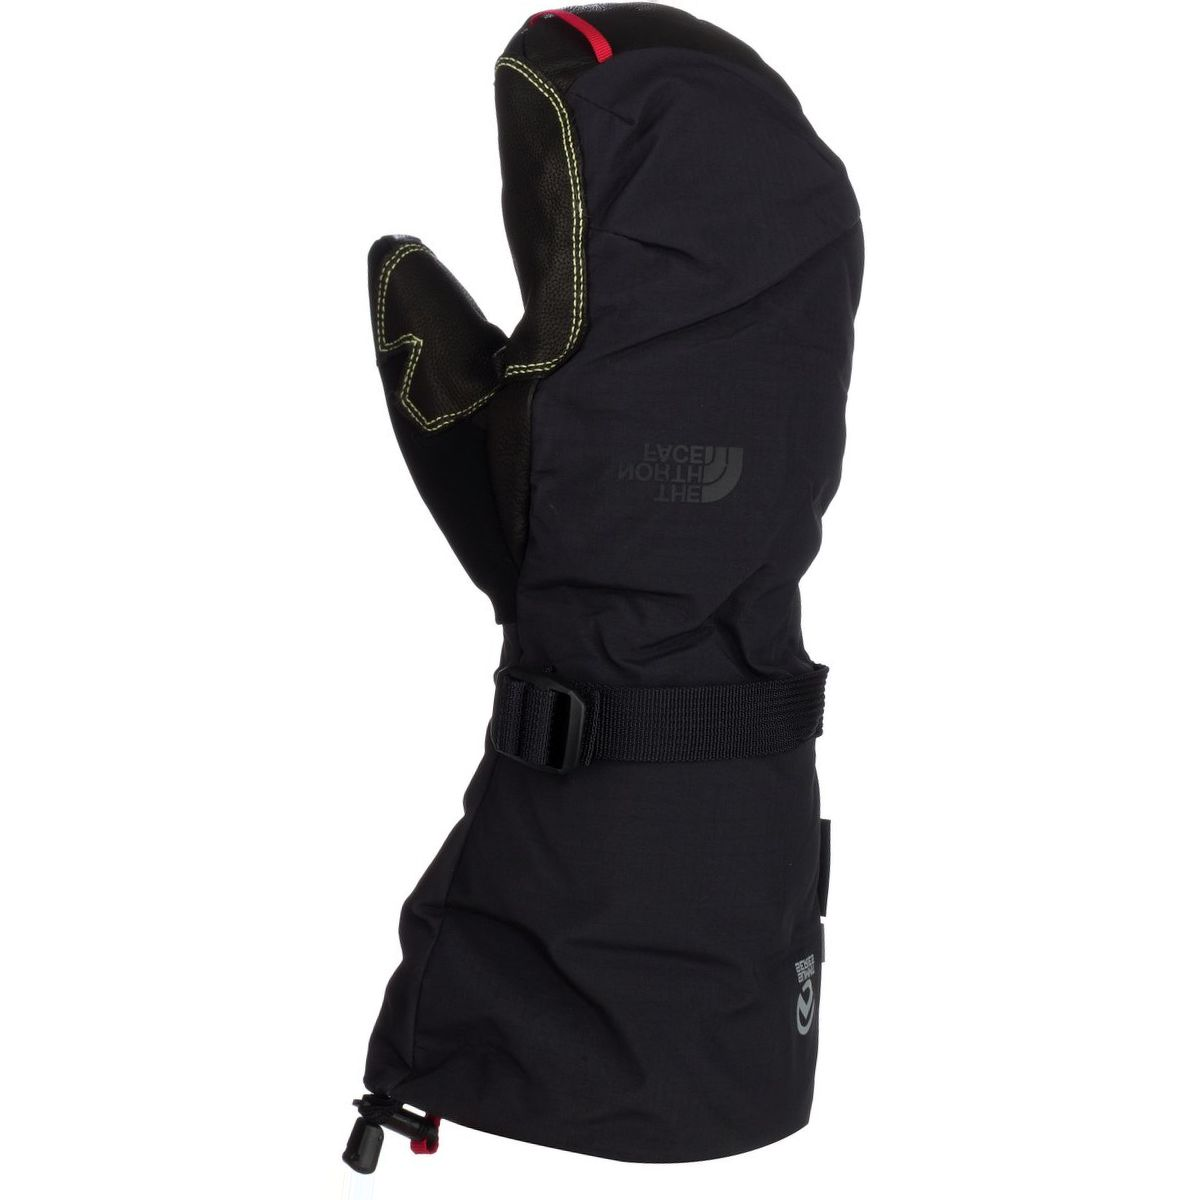 The North Face Summit G5 GTX Pro Belay Mitten - Men's